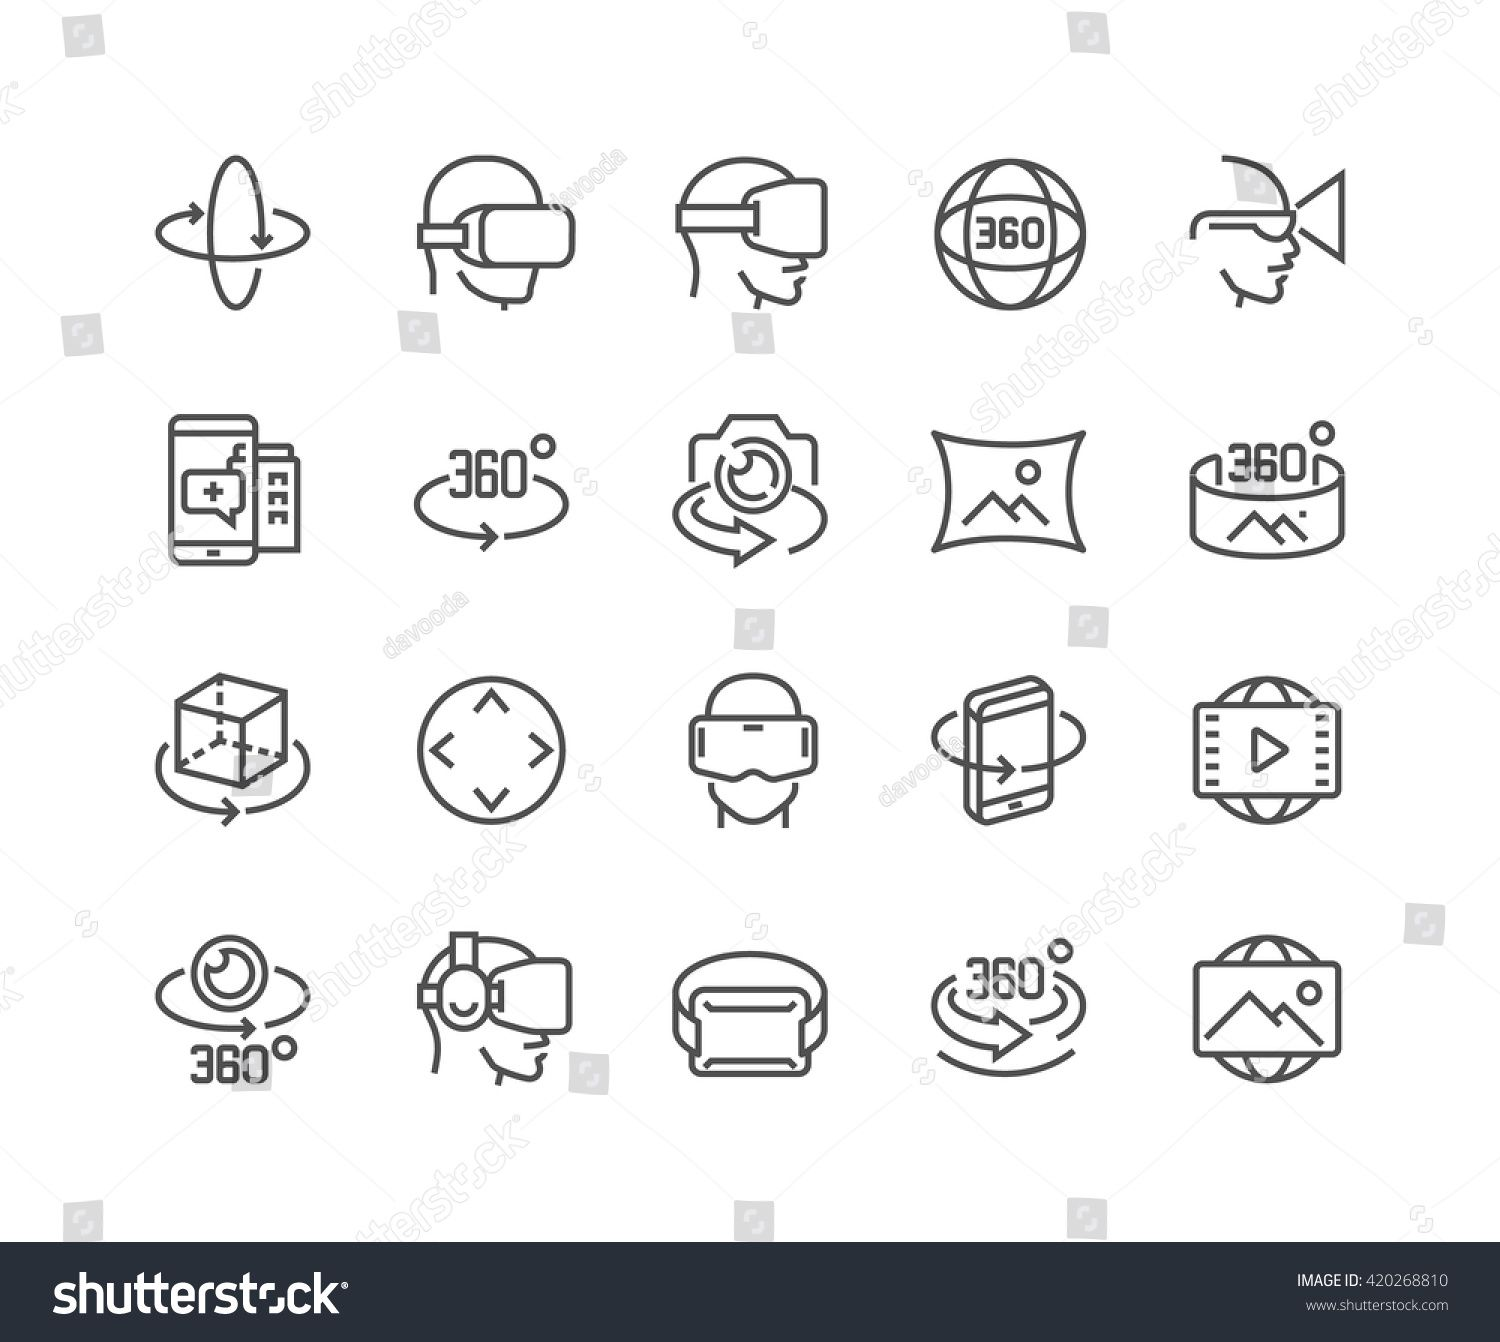 Simple Set of 360 Degree Image and Video Related Vector